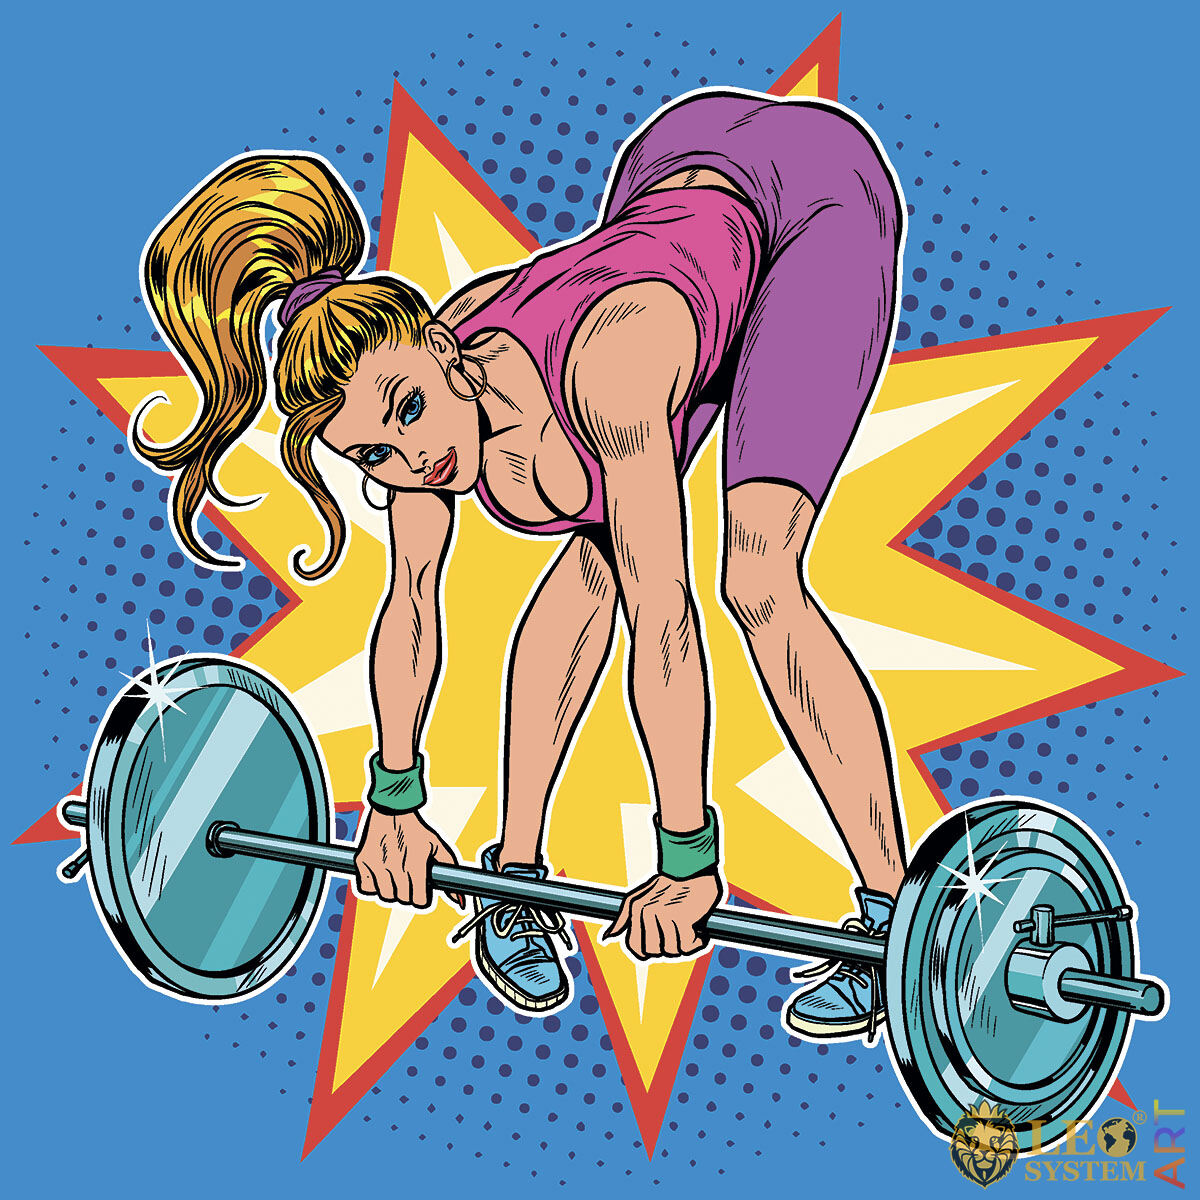 Picture of an athletic woman lifting a heavy barbell